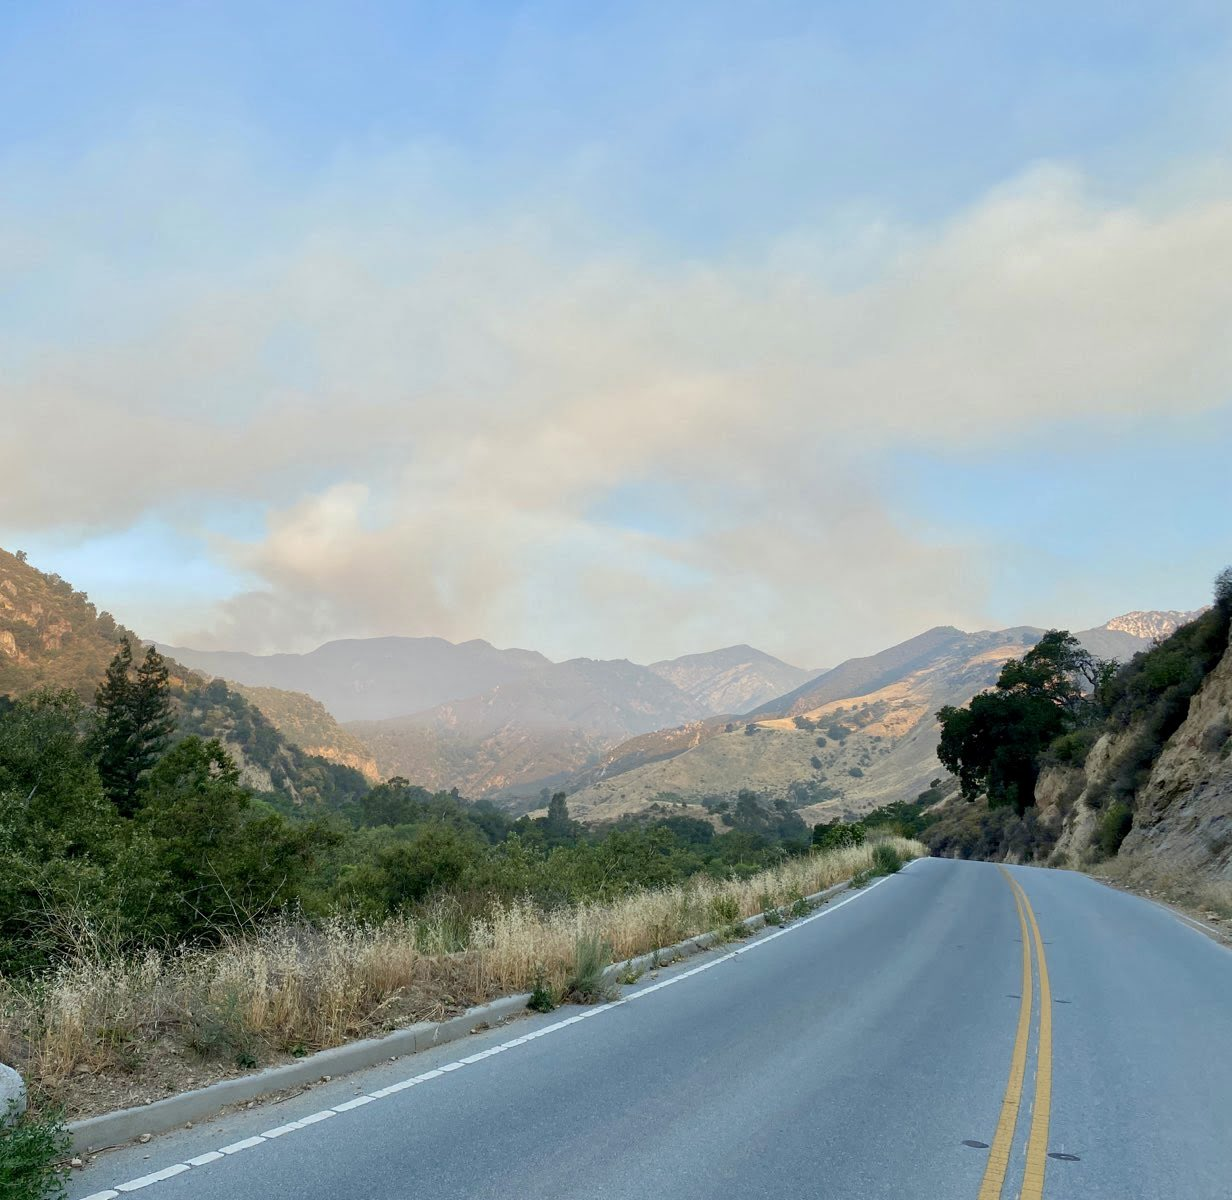 The Willow fire in Los Padres National Forest has grown to more than 2,800 acres, with an estimated containment date of July 11, according to the U.S. Forest Service.(Los Padres National Forest)